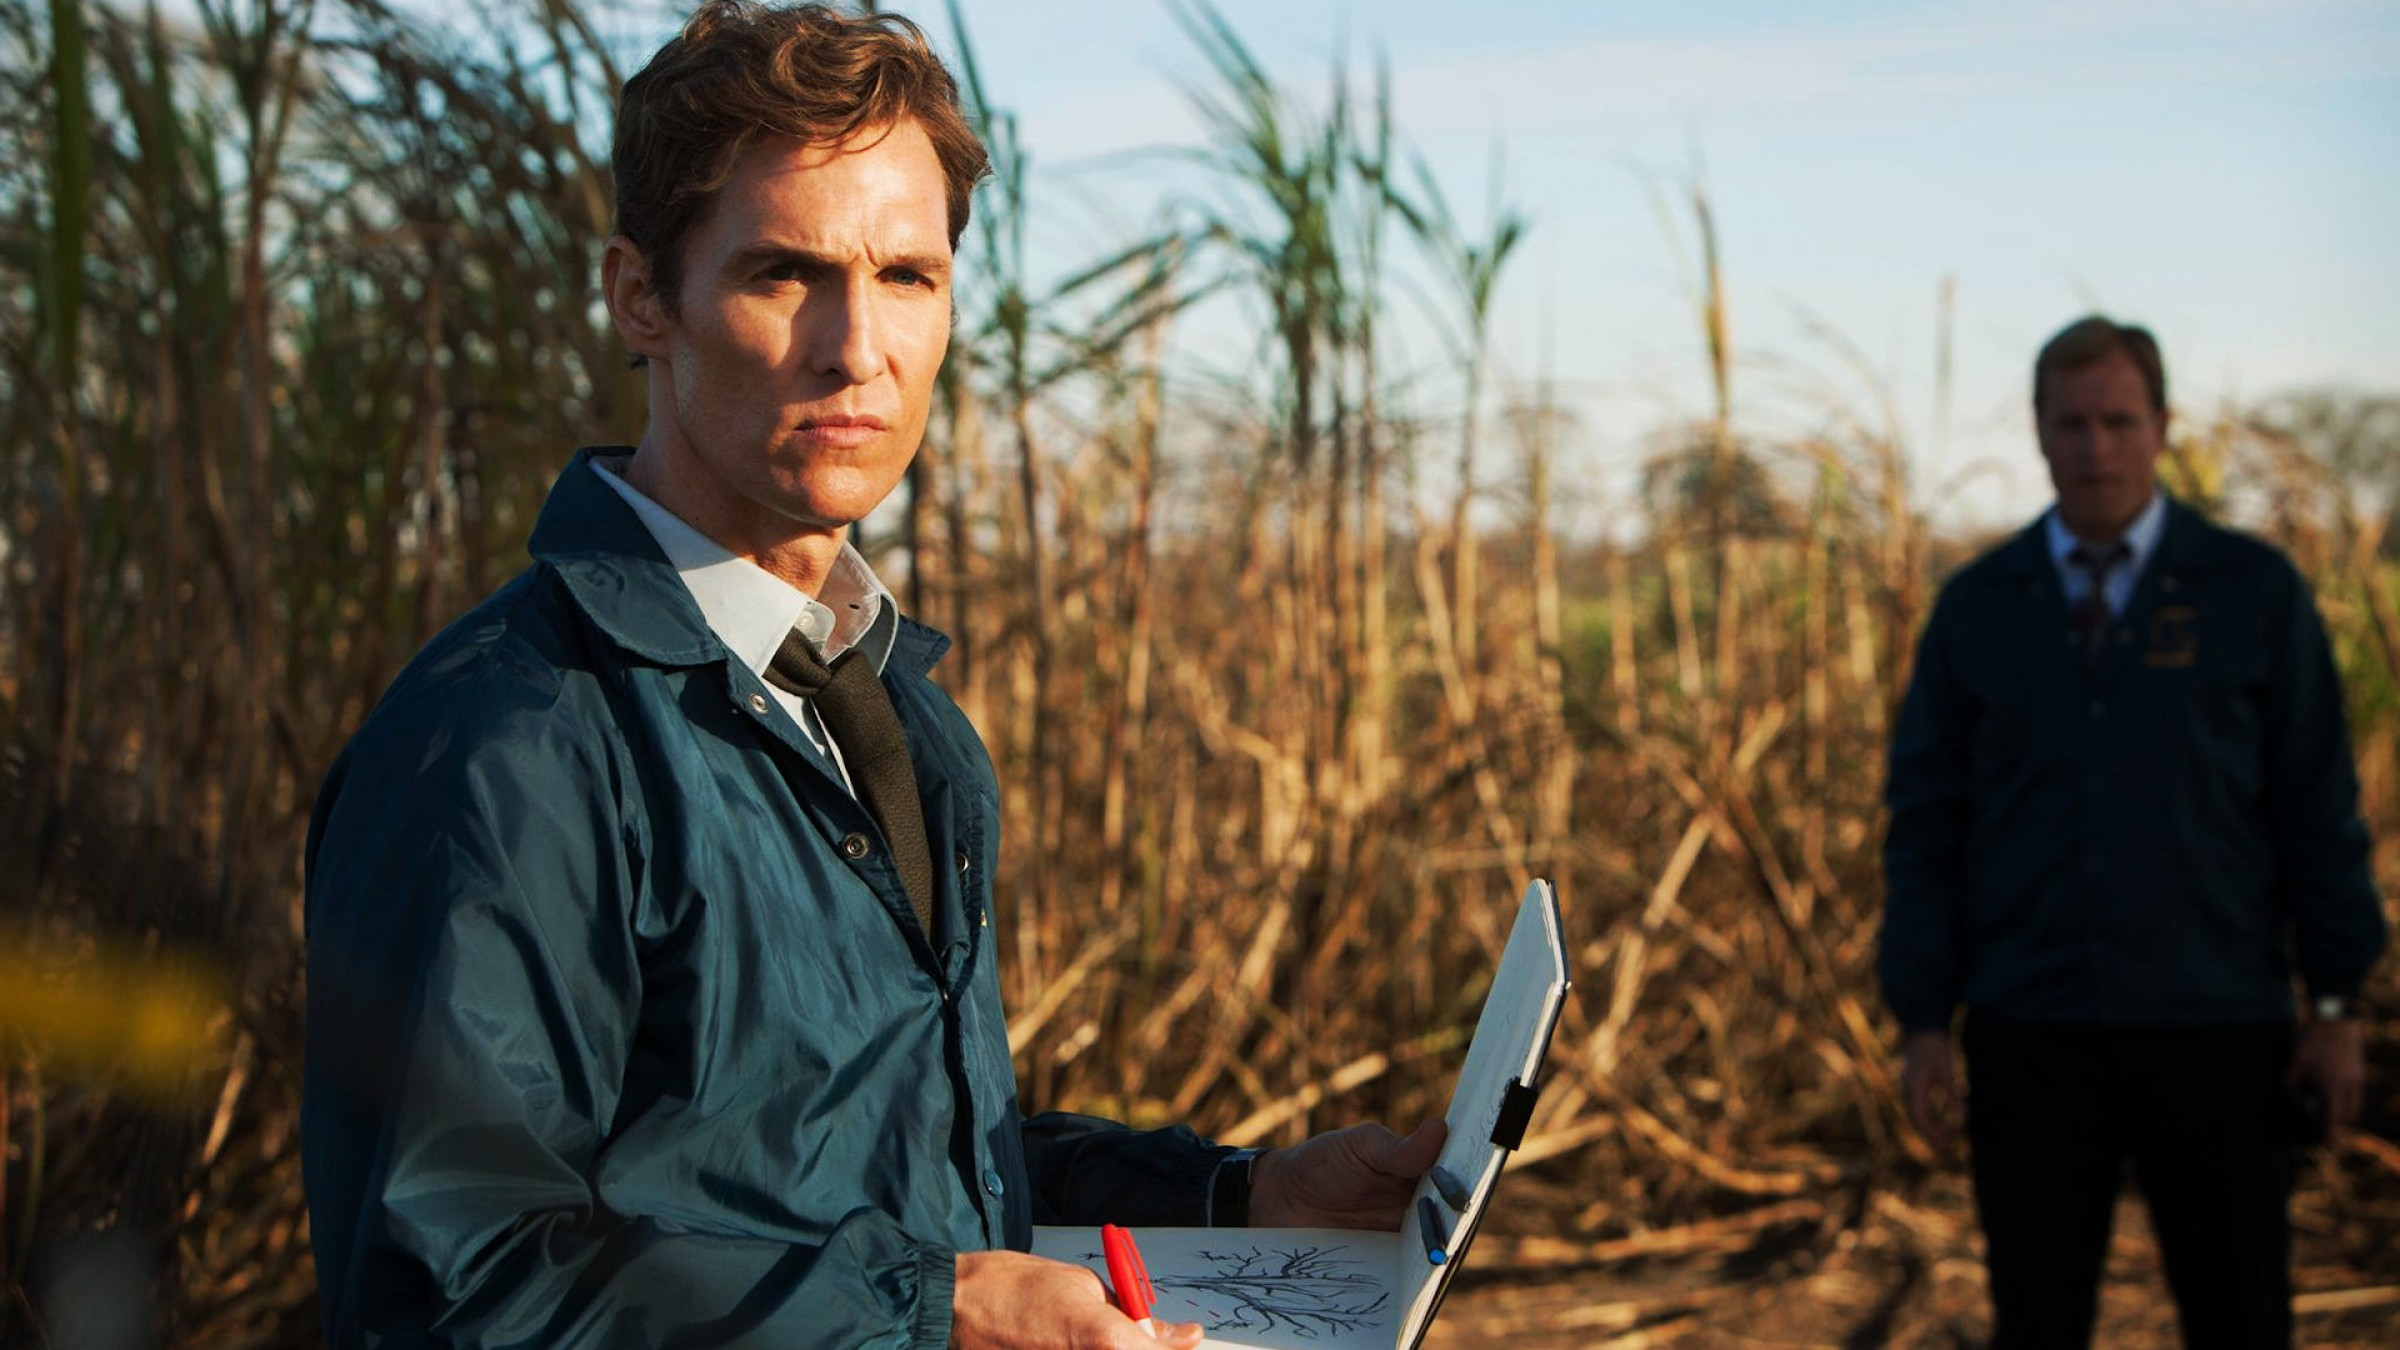 Watch: Lessons from 'True Detective' on How to Write a Character-Driven Plot